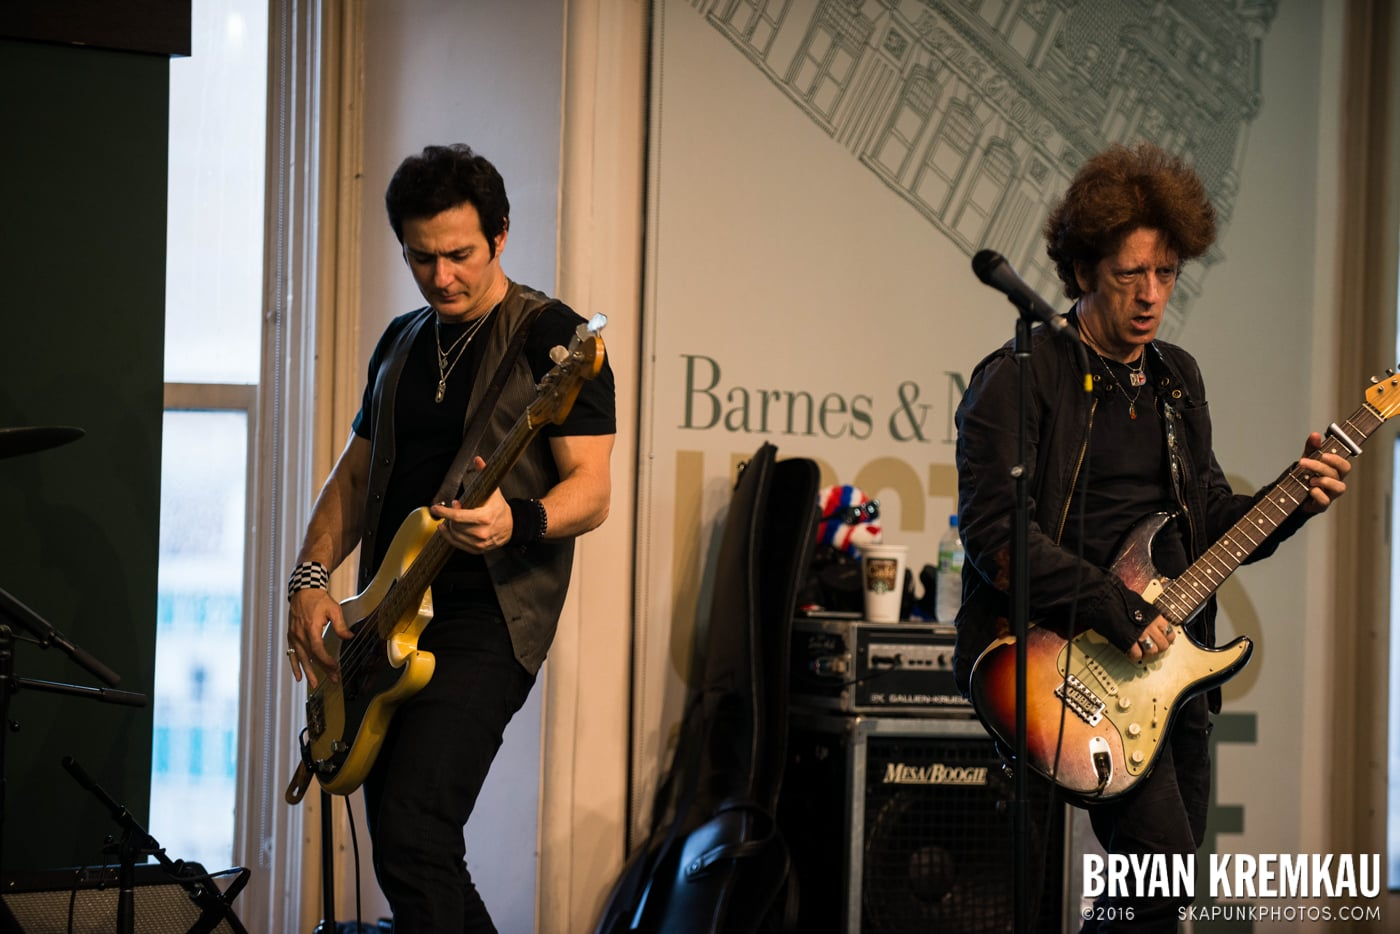 Willie Nile @ Barnes & Noble Union Square, NYC - June 25th 2013 (16)